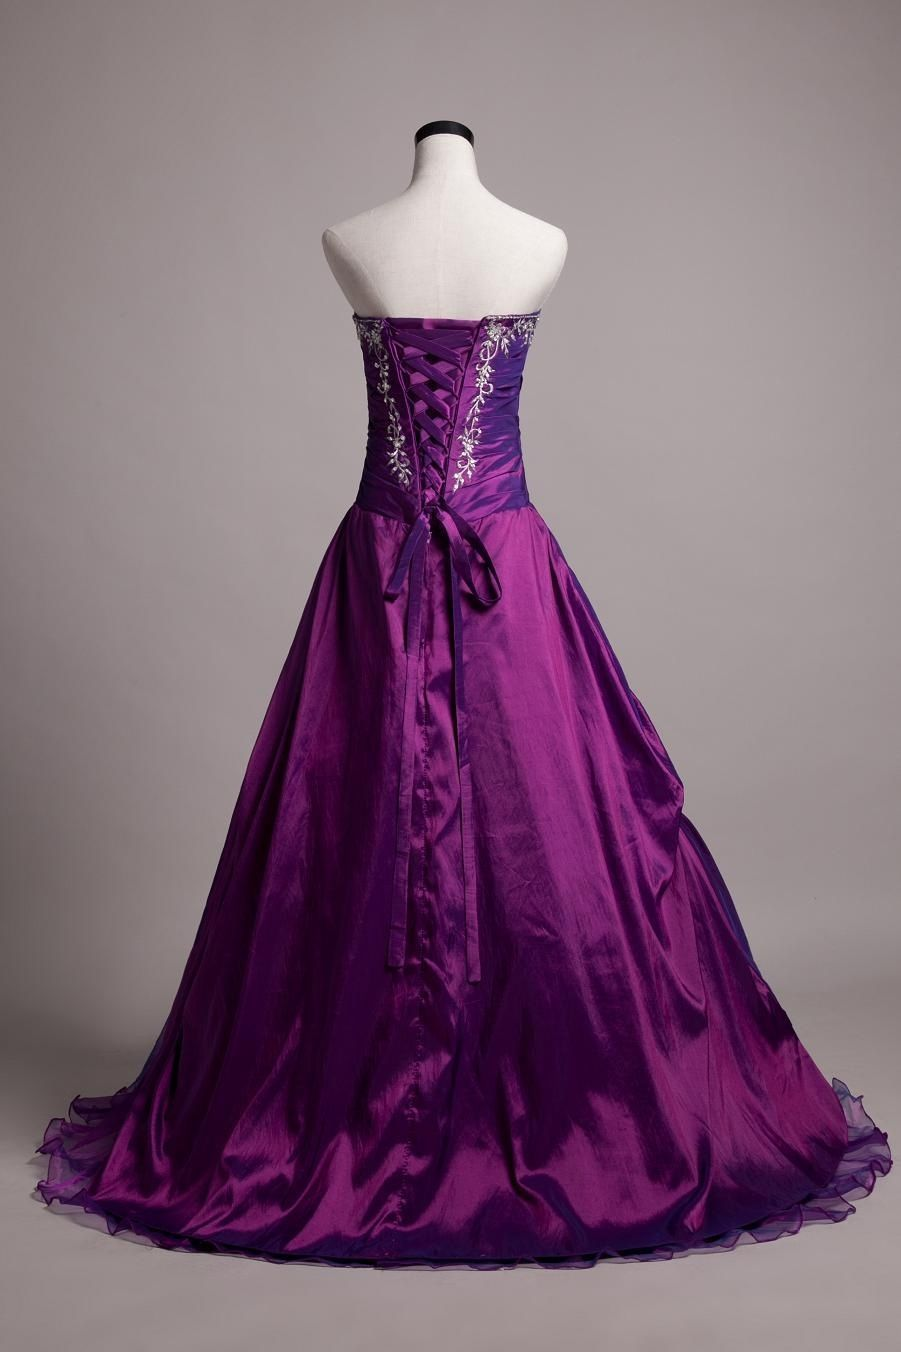 Purple Plus Size Strapless Corset Wedding Dress from Curvy Brides